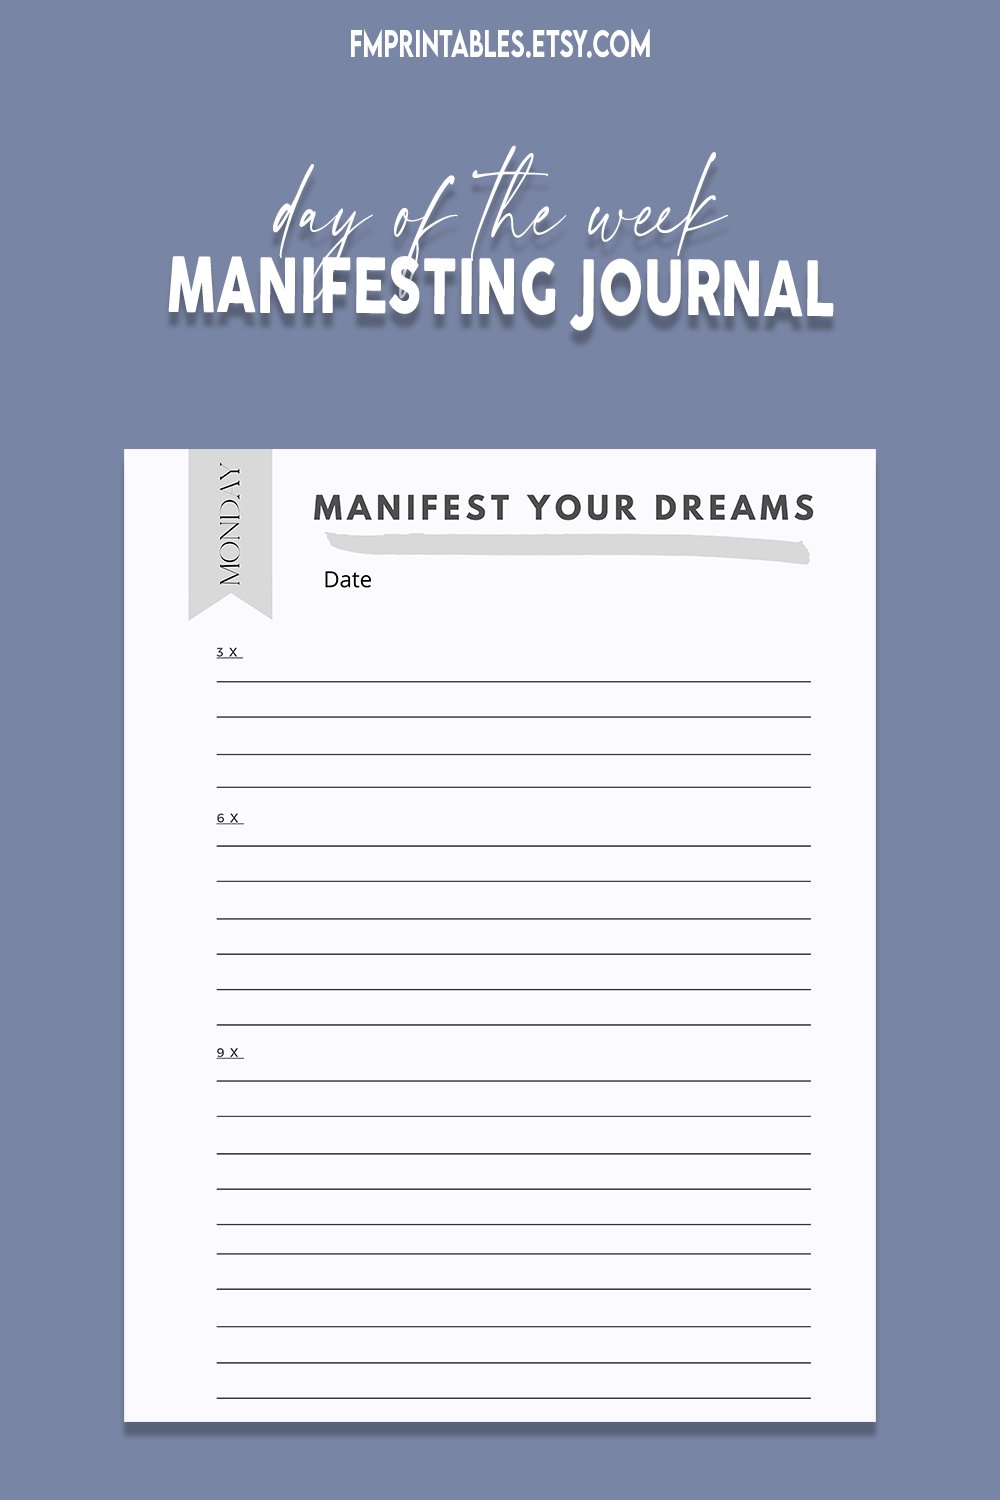 Day Of The Week Manifestation Journal 3 6 9 Method Instant Download Printable Manifestation Journal Manifestation Dreaming Of You